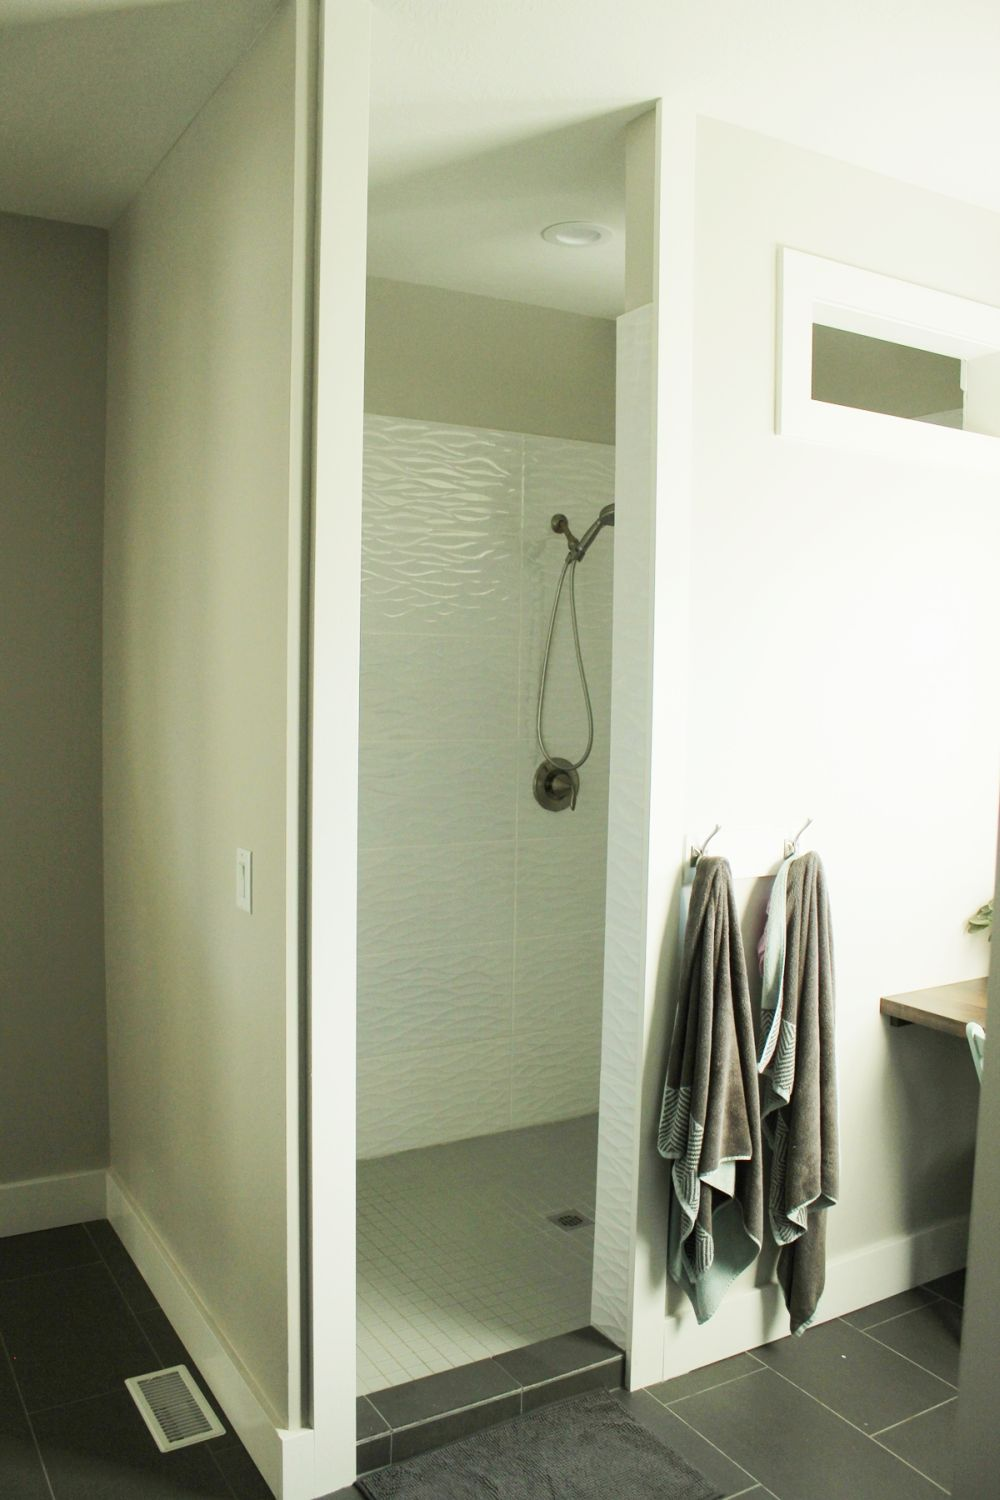 walk-in shower completes the white bathroom